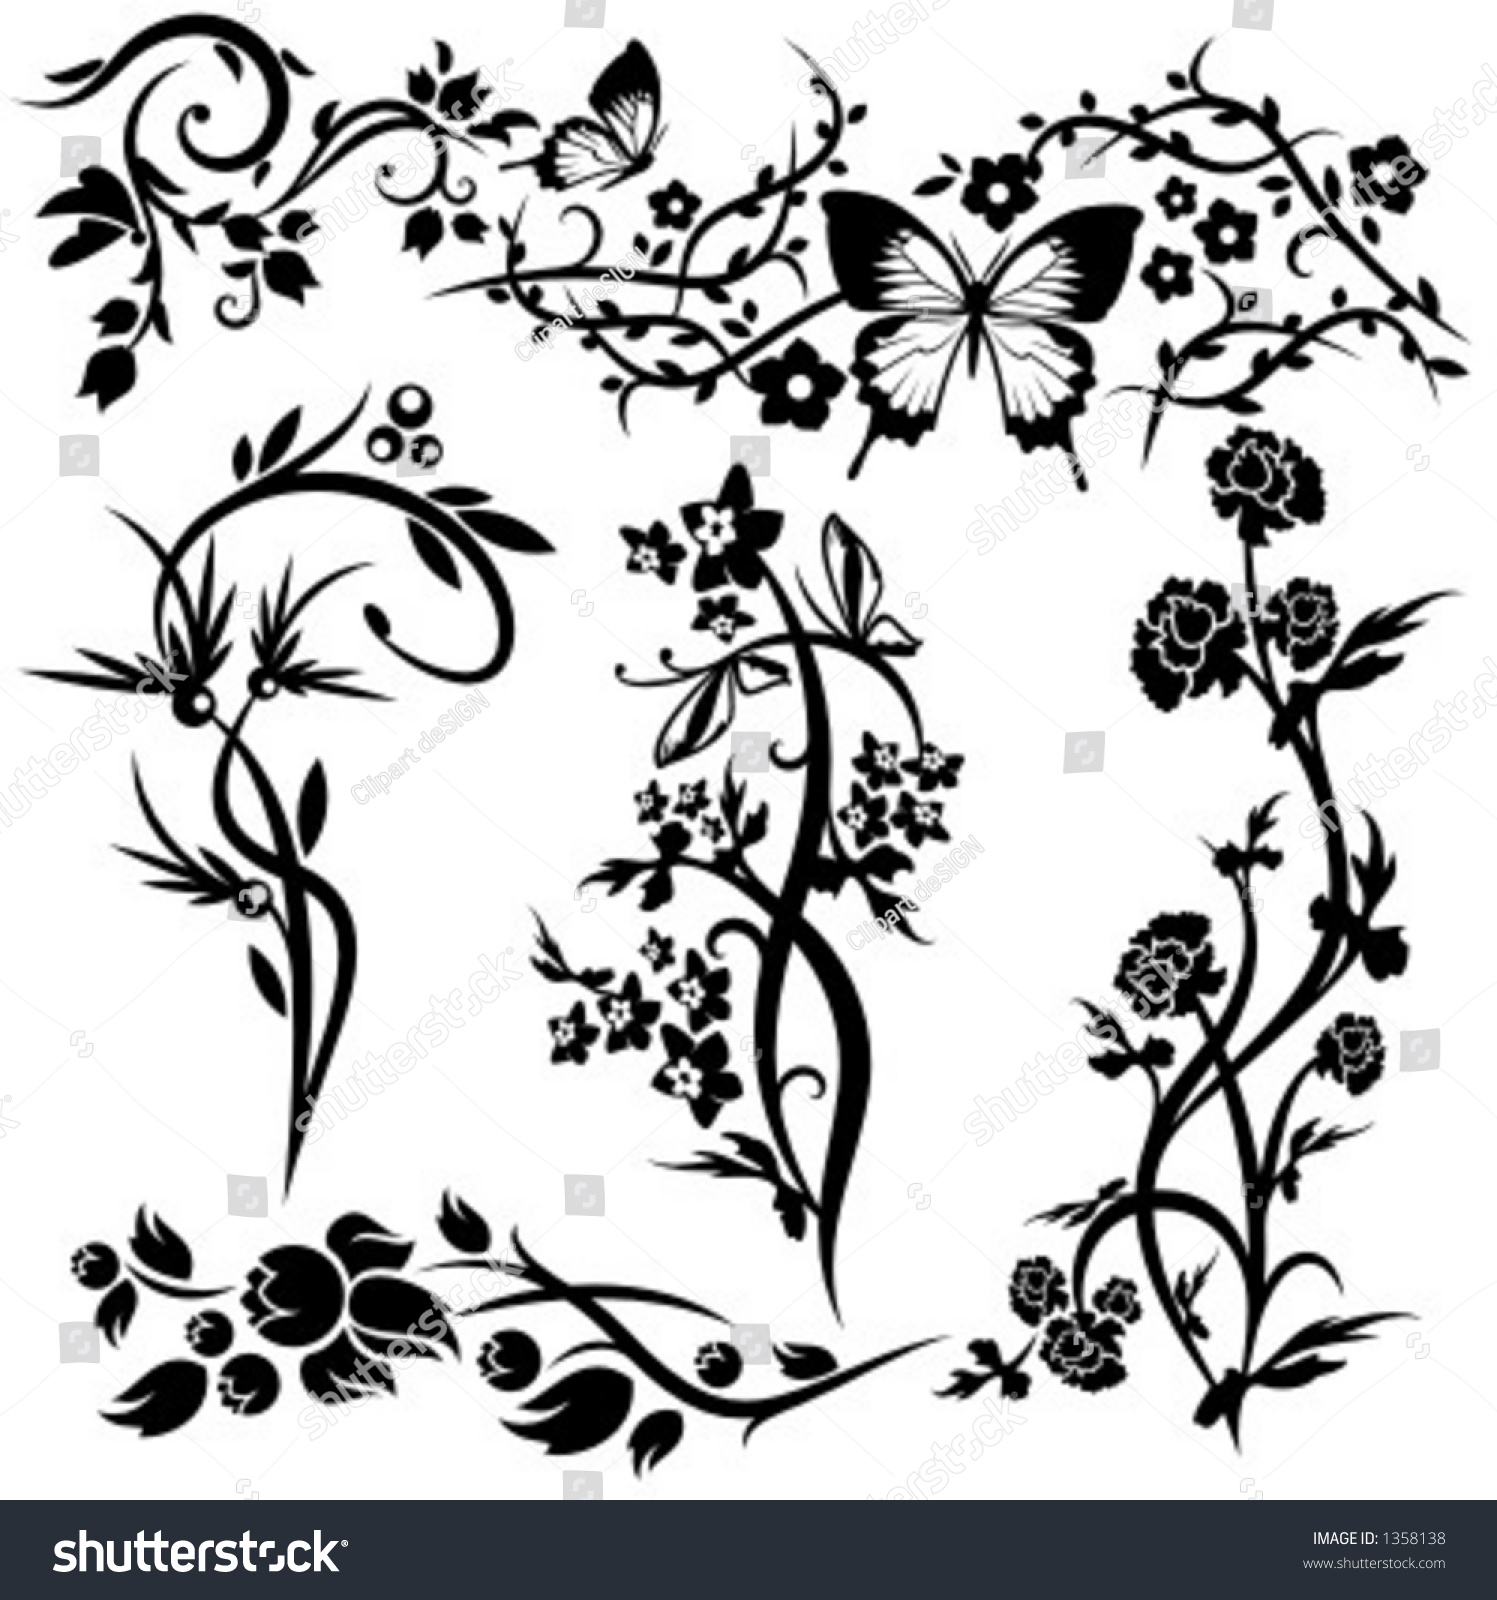 Set 6 Chinese Floral Designs Stock Vector 2018 Shutterstock